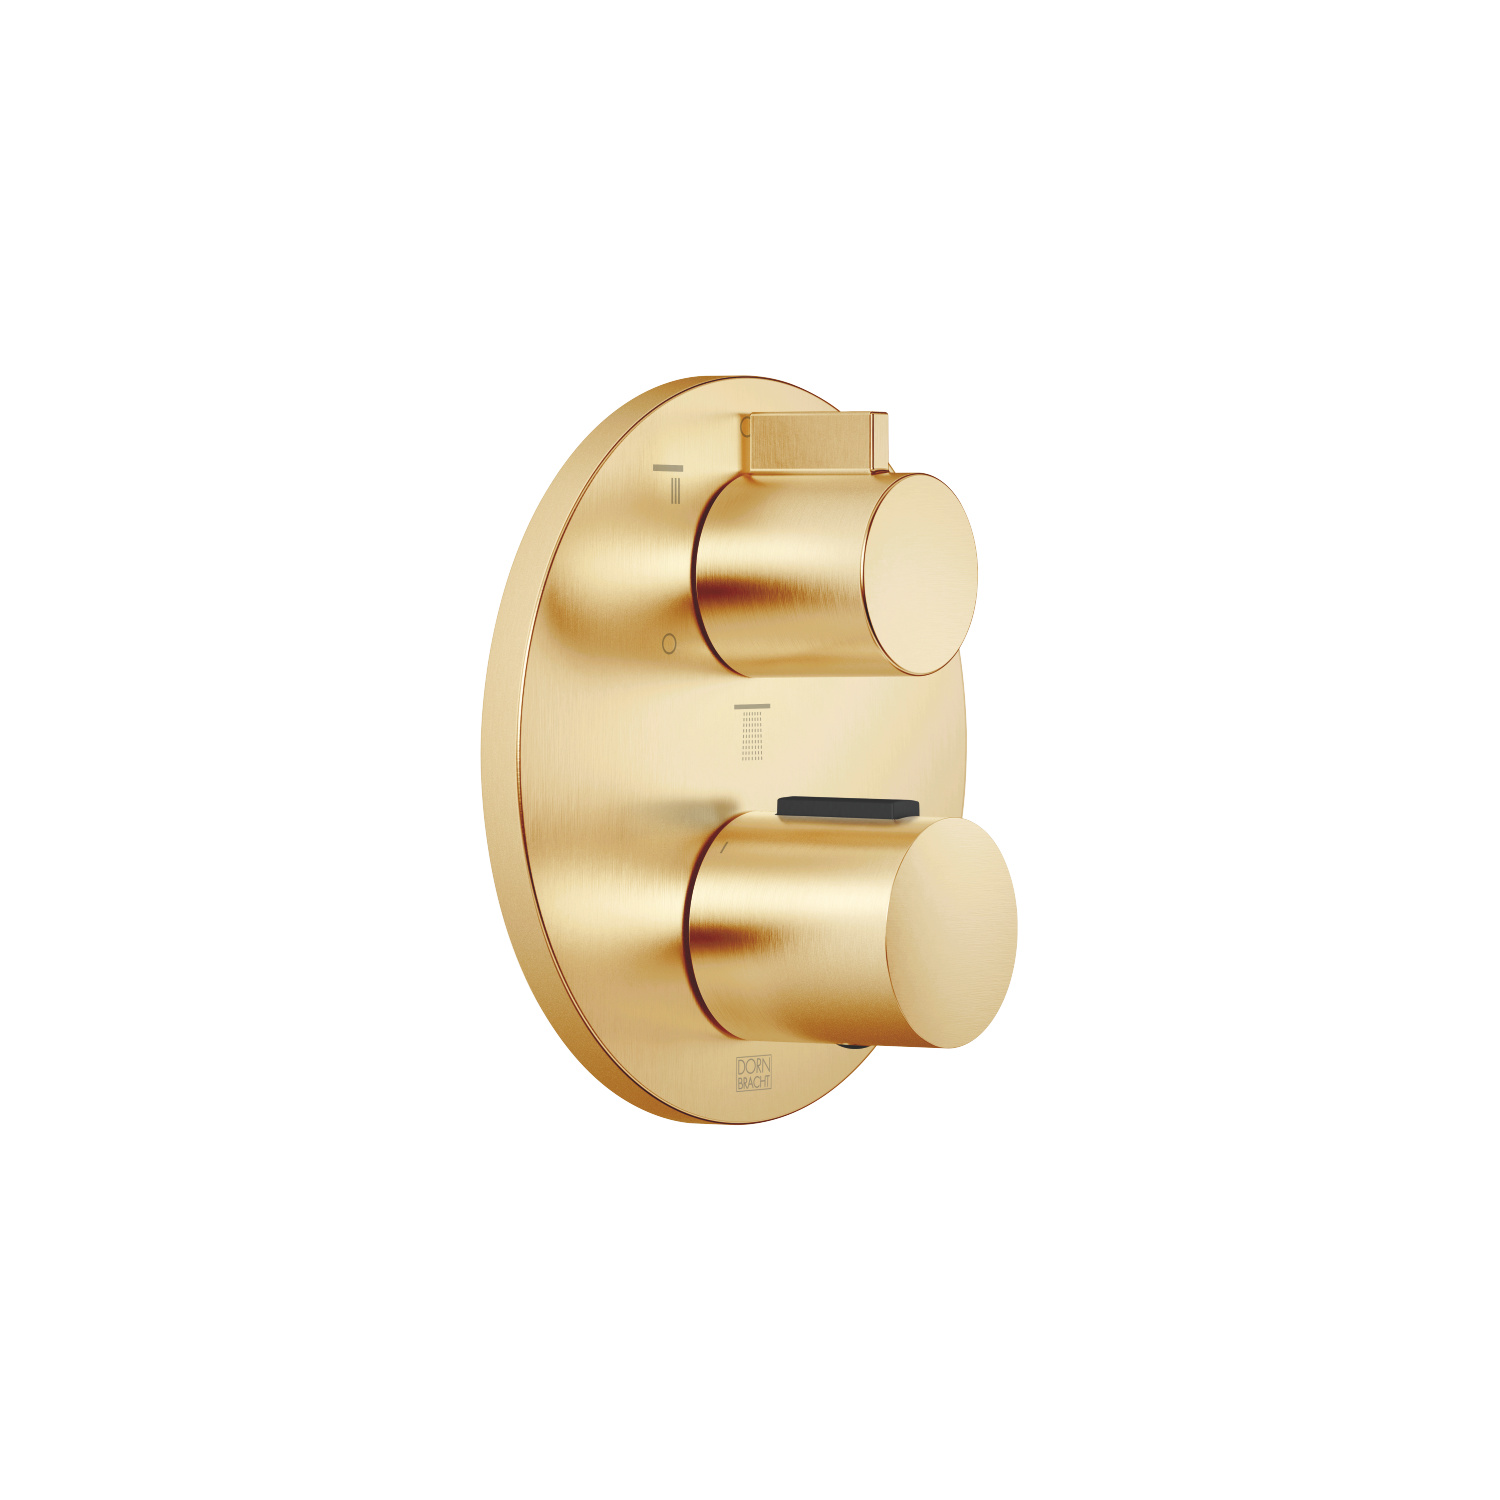 Concealed thermostat with three function volume control - brushed Durabrass